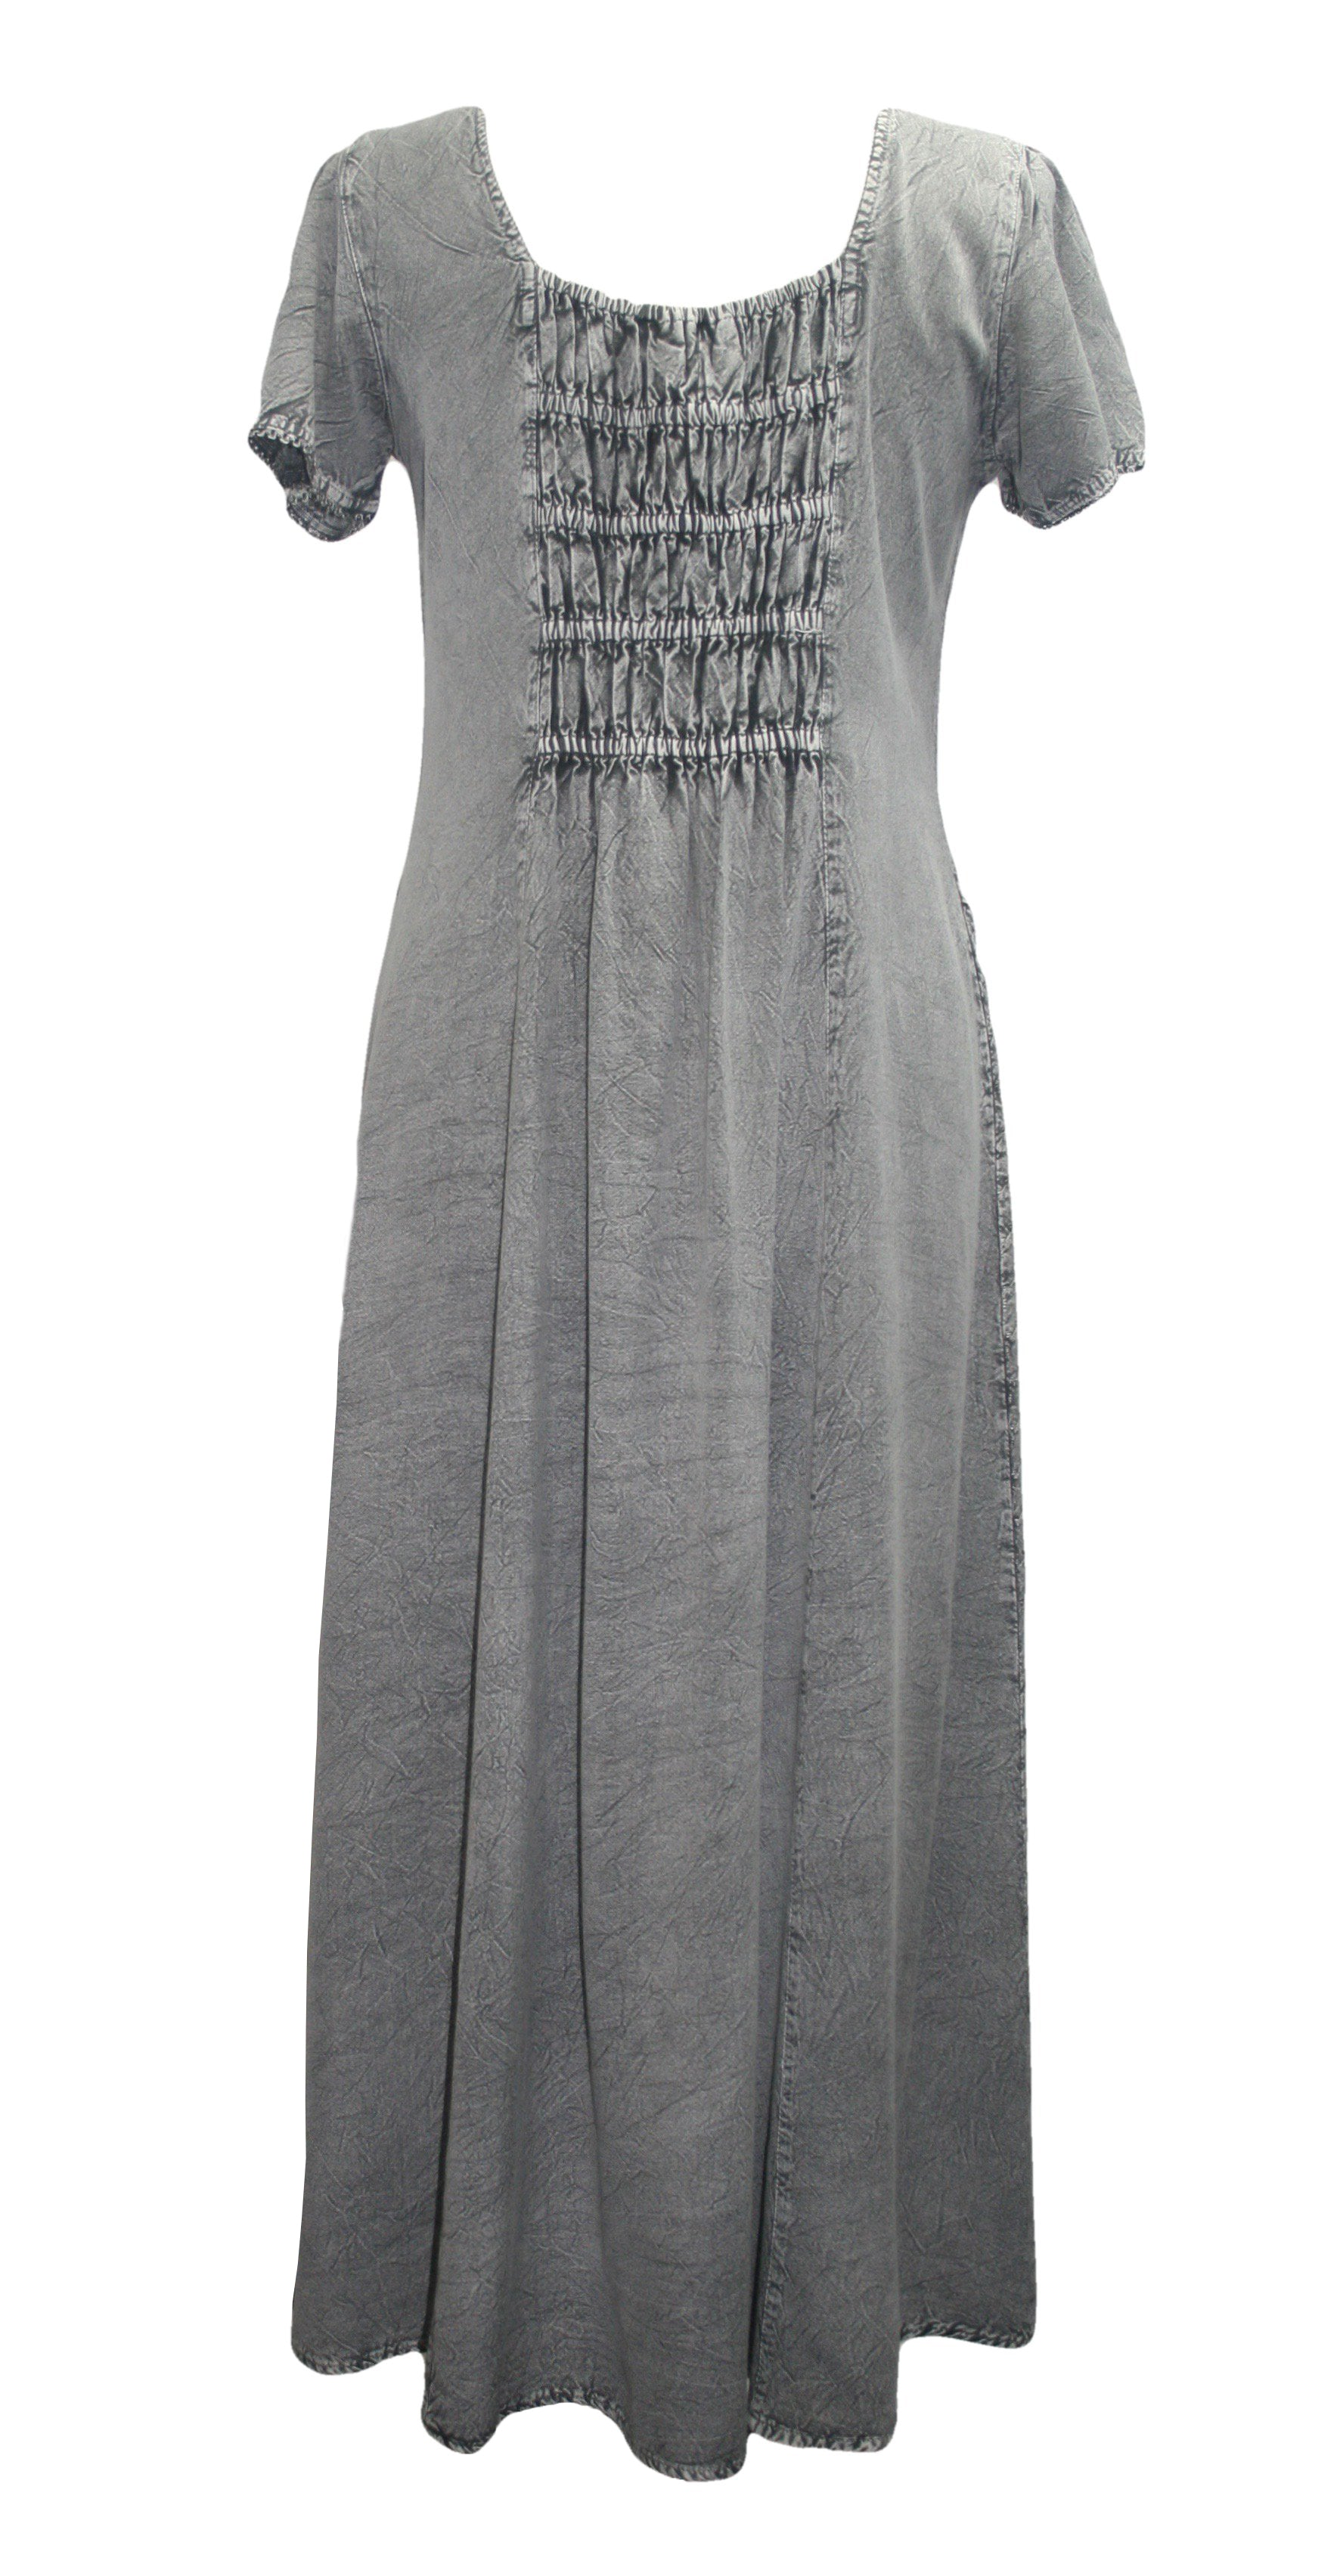 1024 DR Gothic Vintage Cap Sleeve Embroidered Casual Chic Dress Gown - Agan Traders, Silver